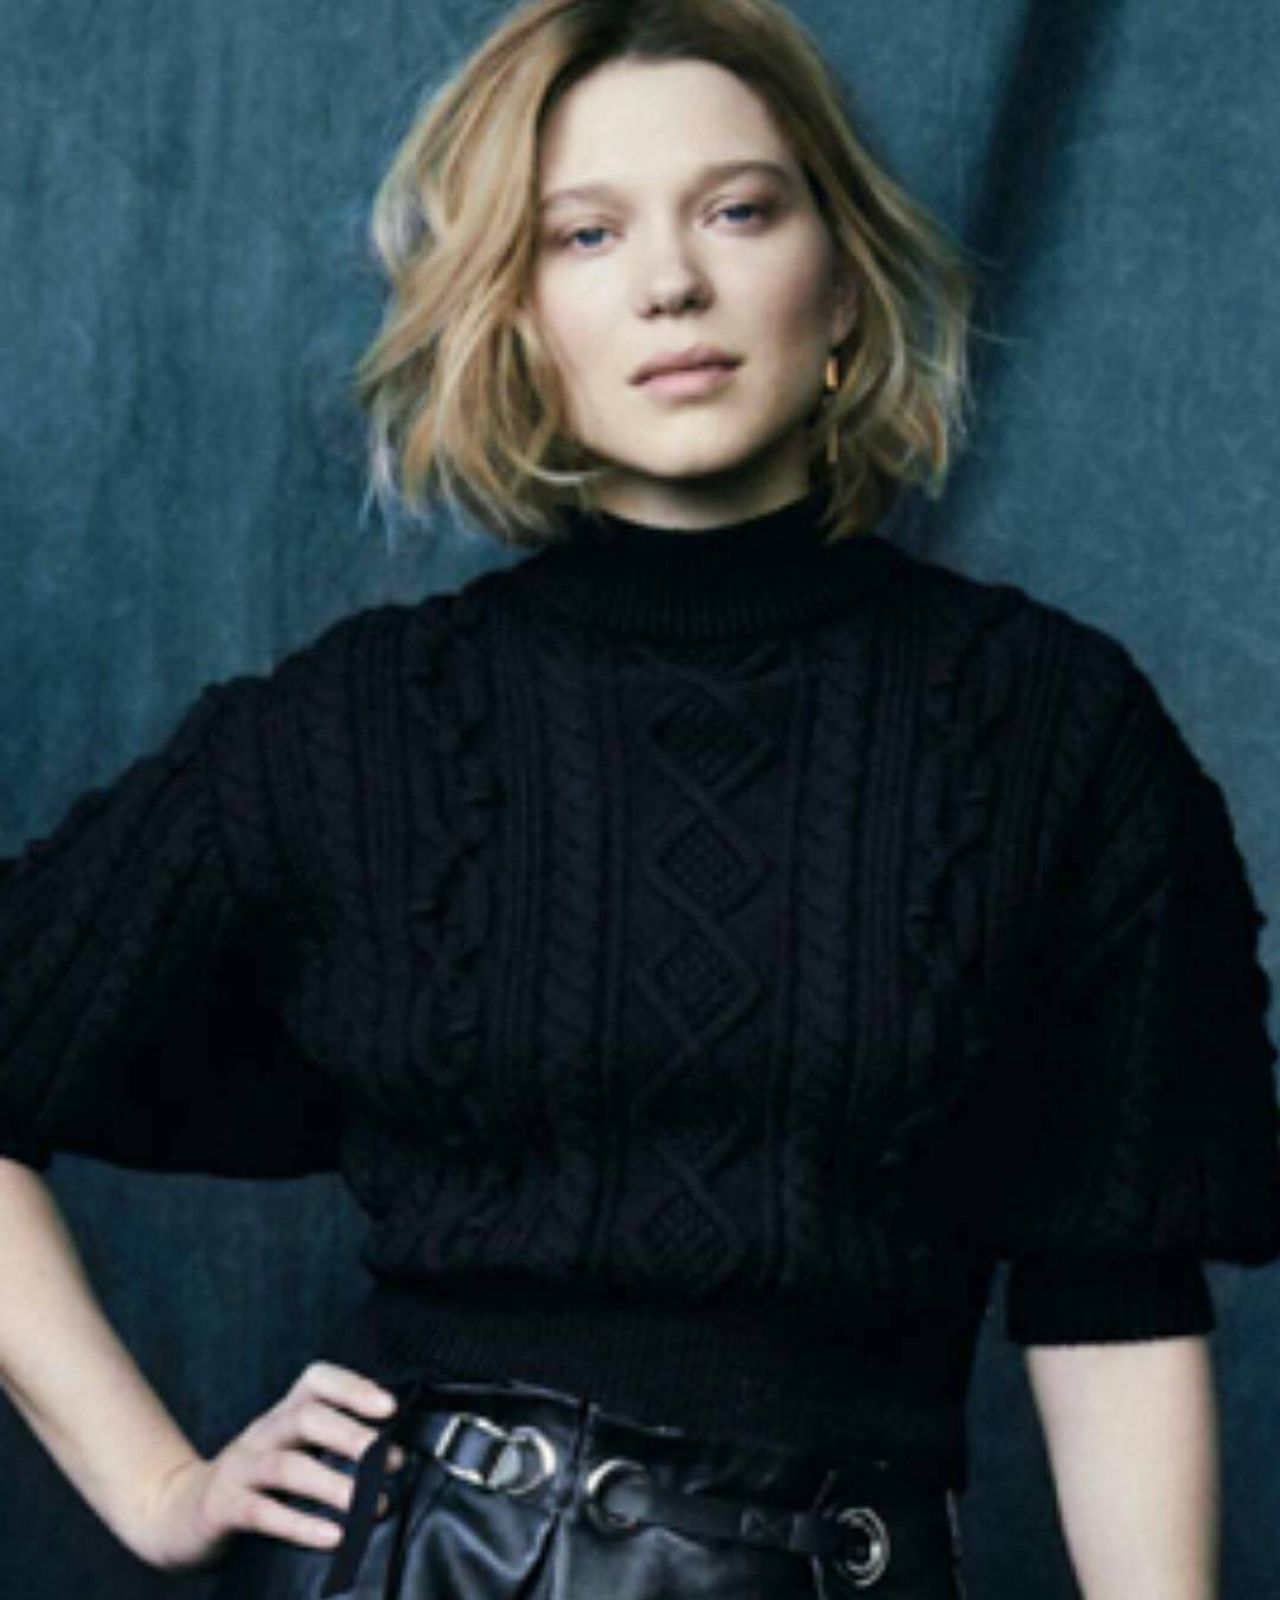 lea seydoux latest photos celebmafia. Black Bedroom Furniture Sets. Home Design Ideas